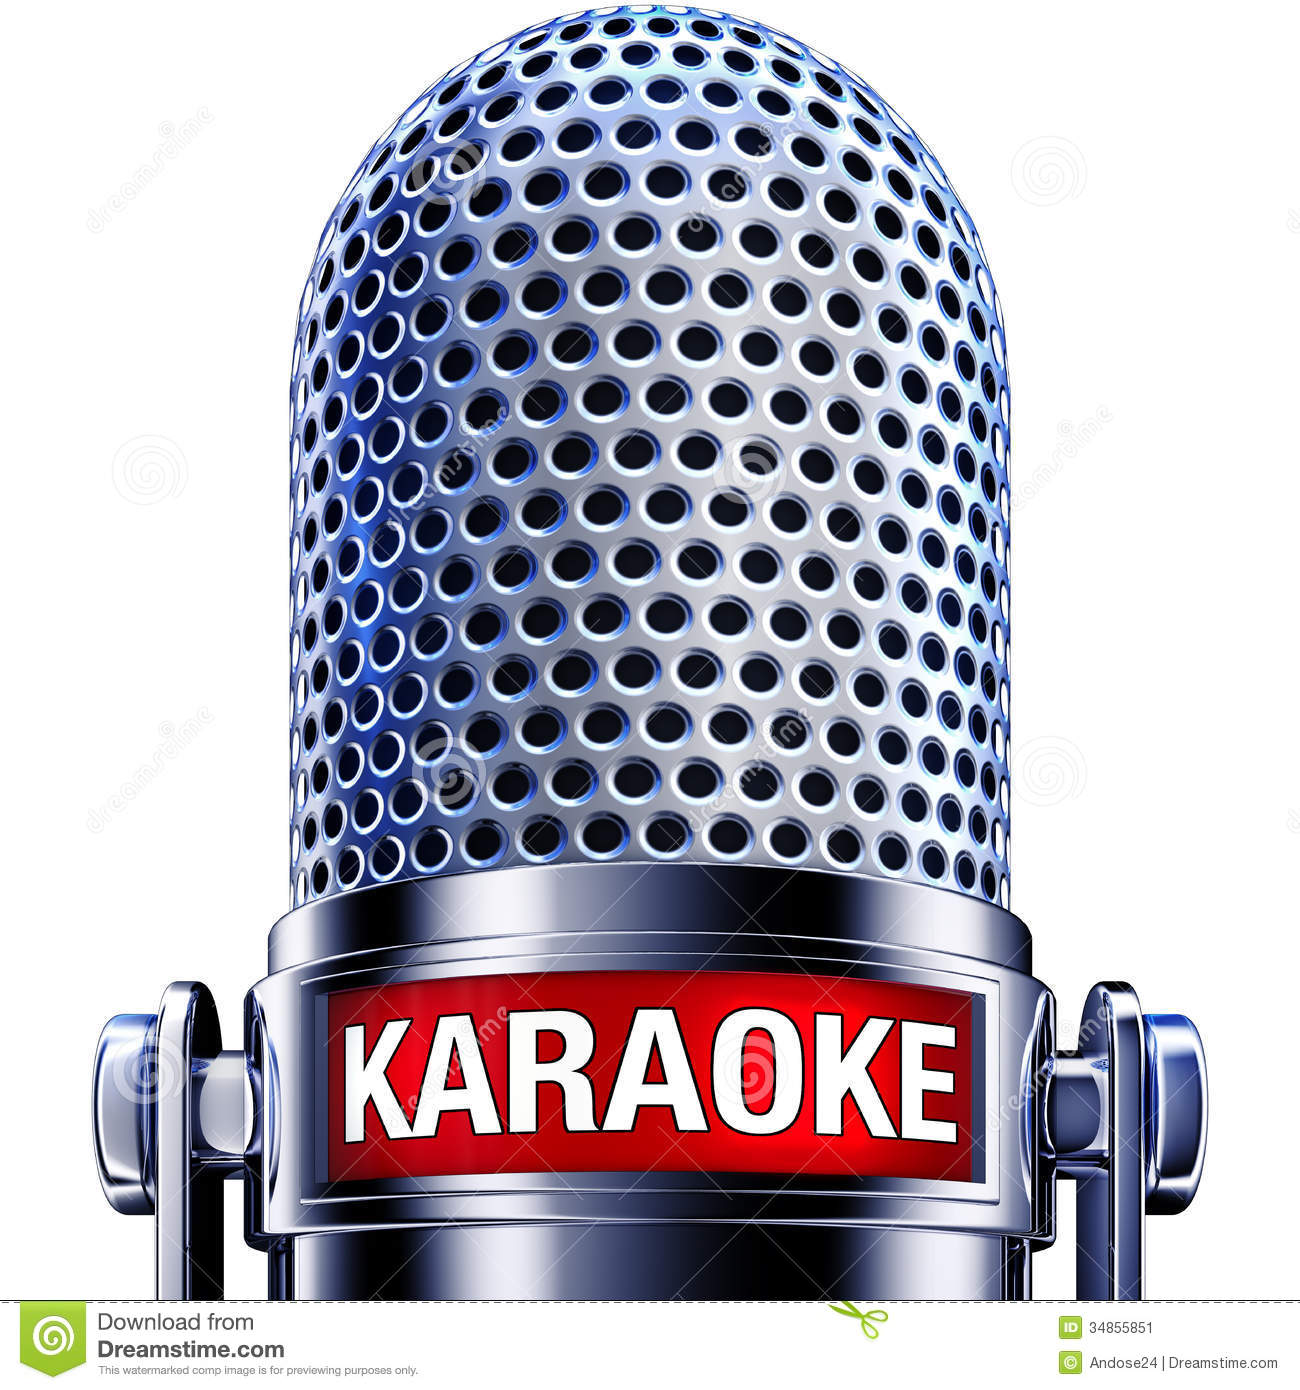 Rendering of a microphone with a karaoke icon.